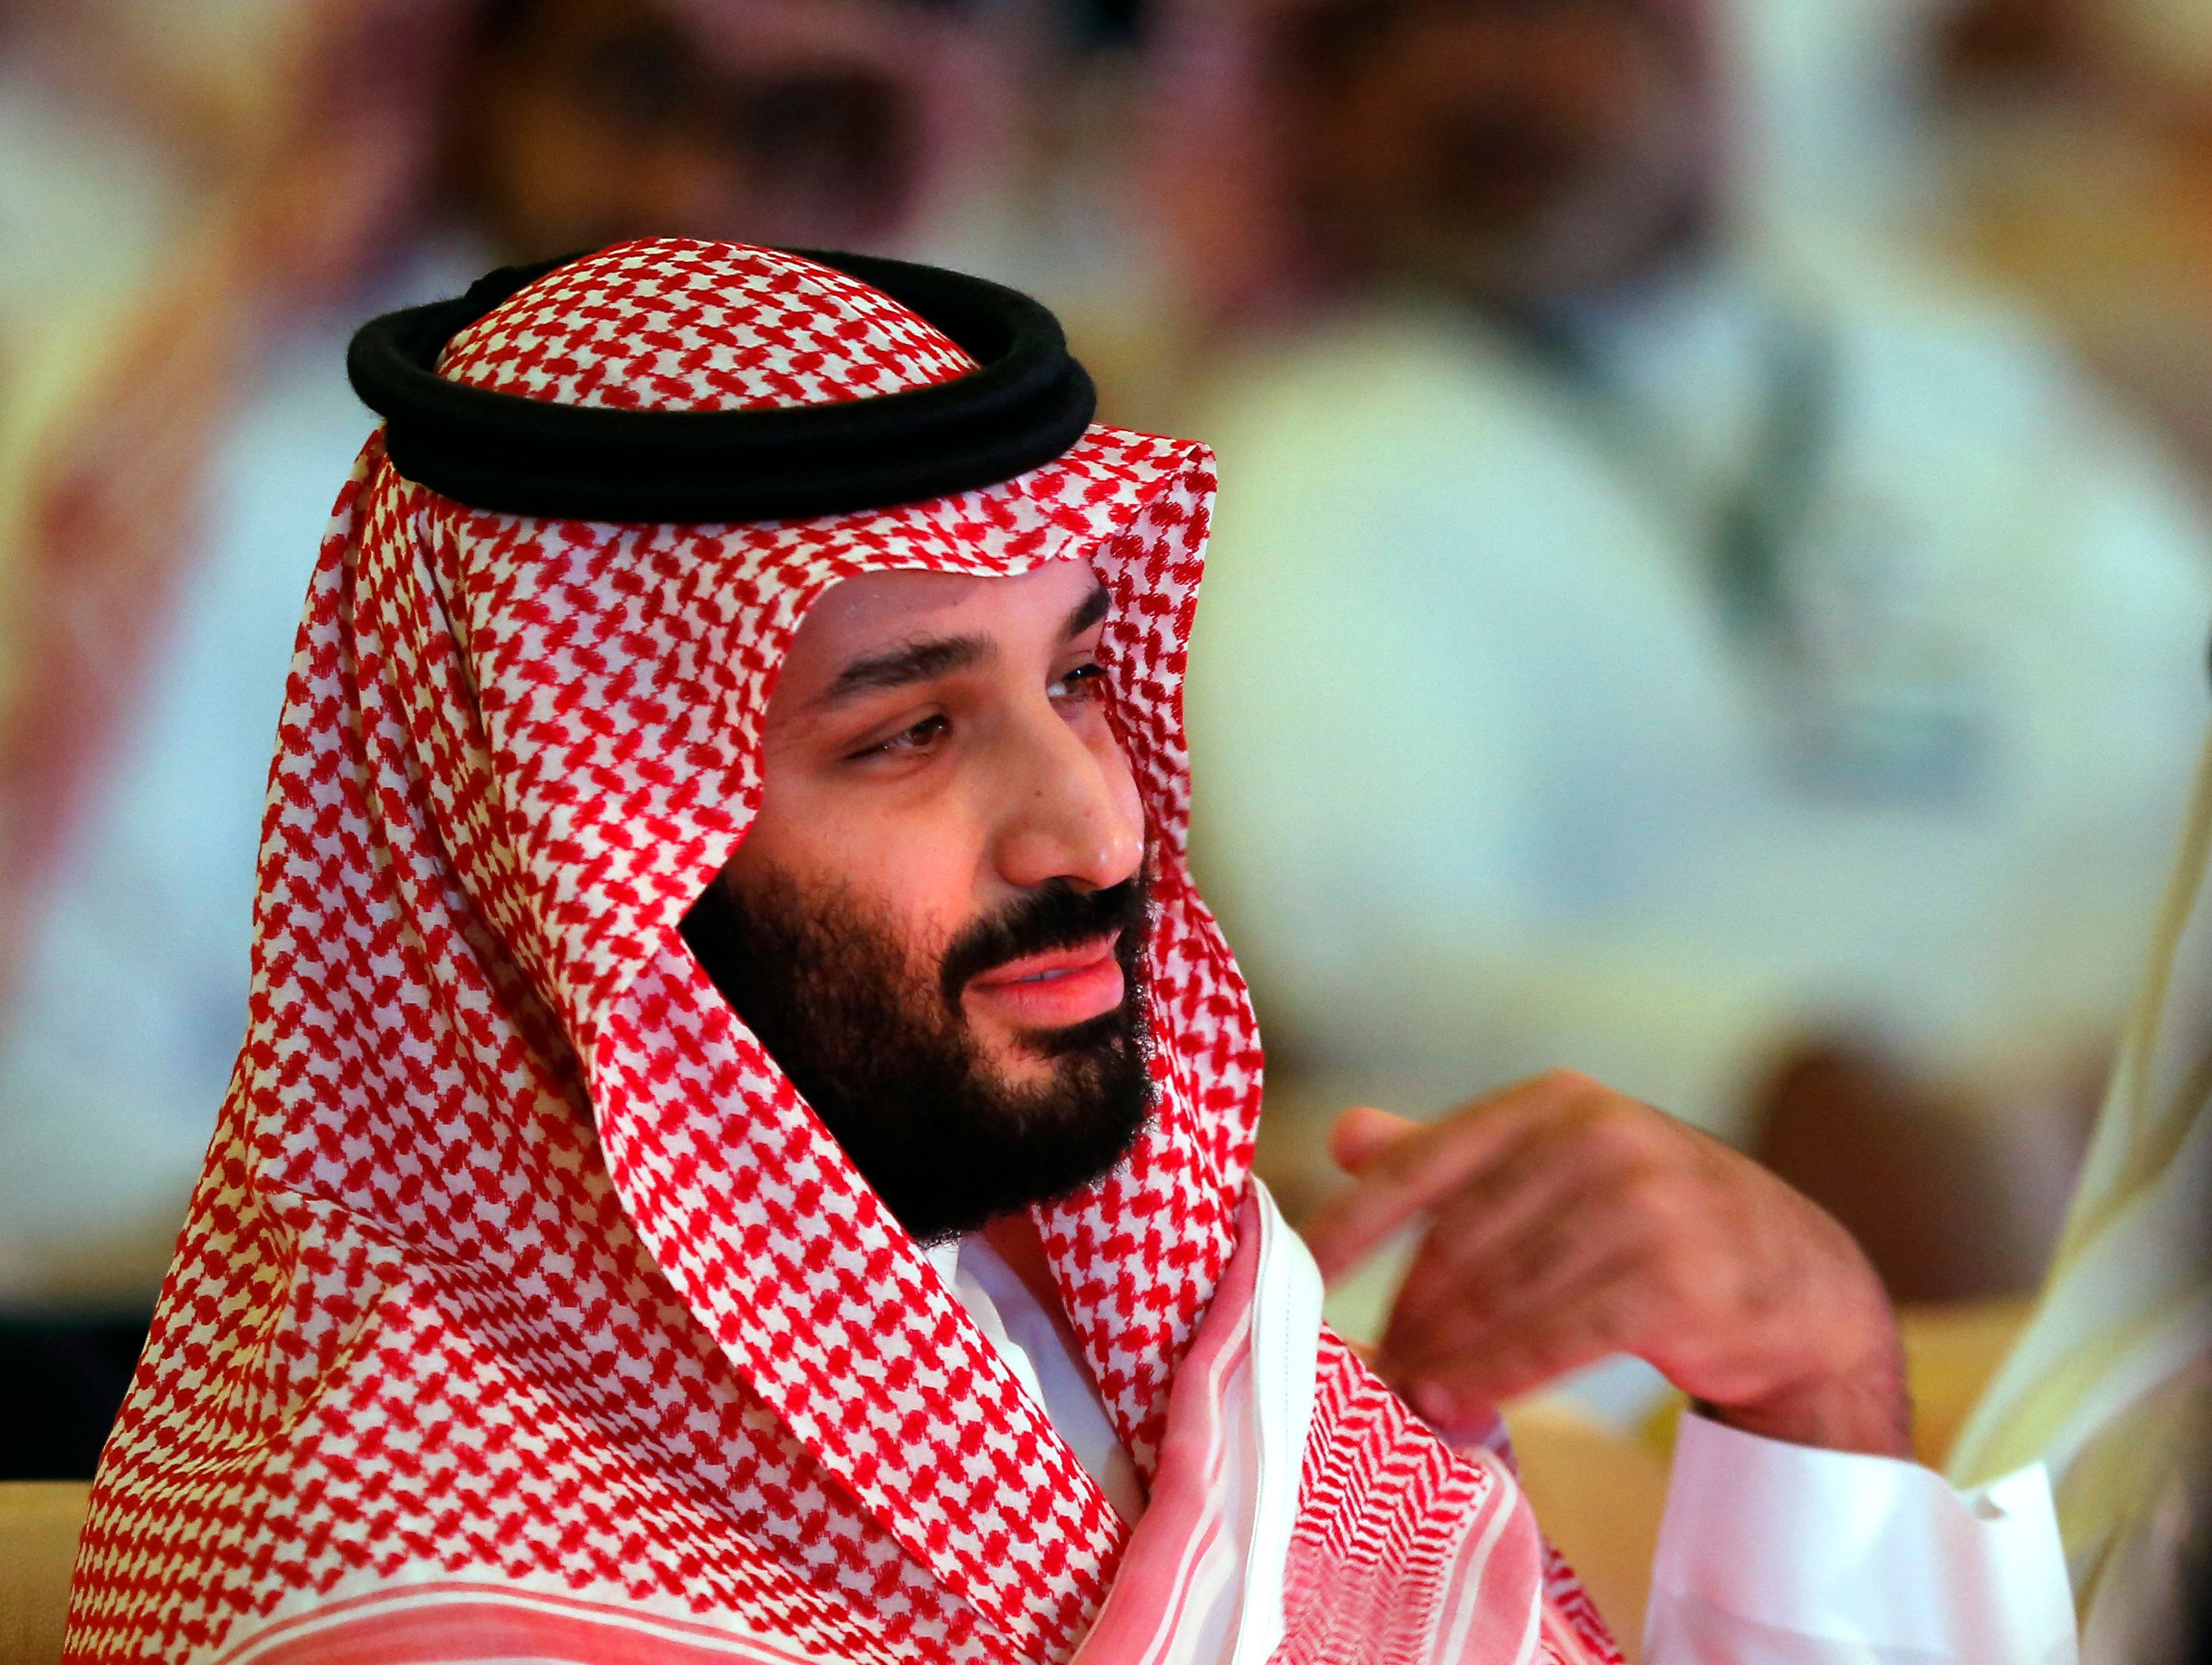 CIA Determines Saudi Crown Prince Ordered Jamal Khashoggi's